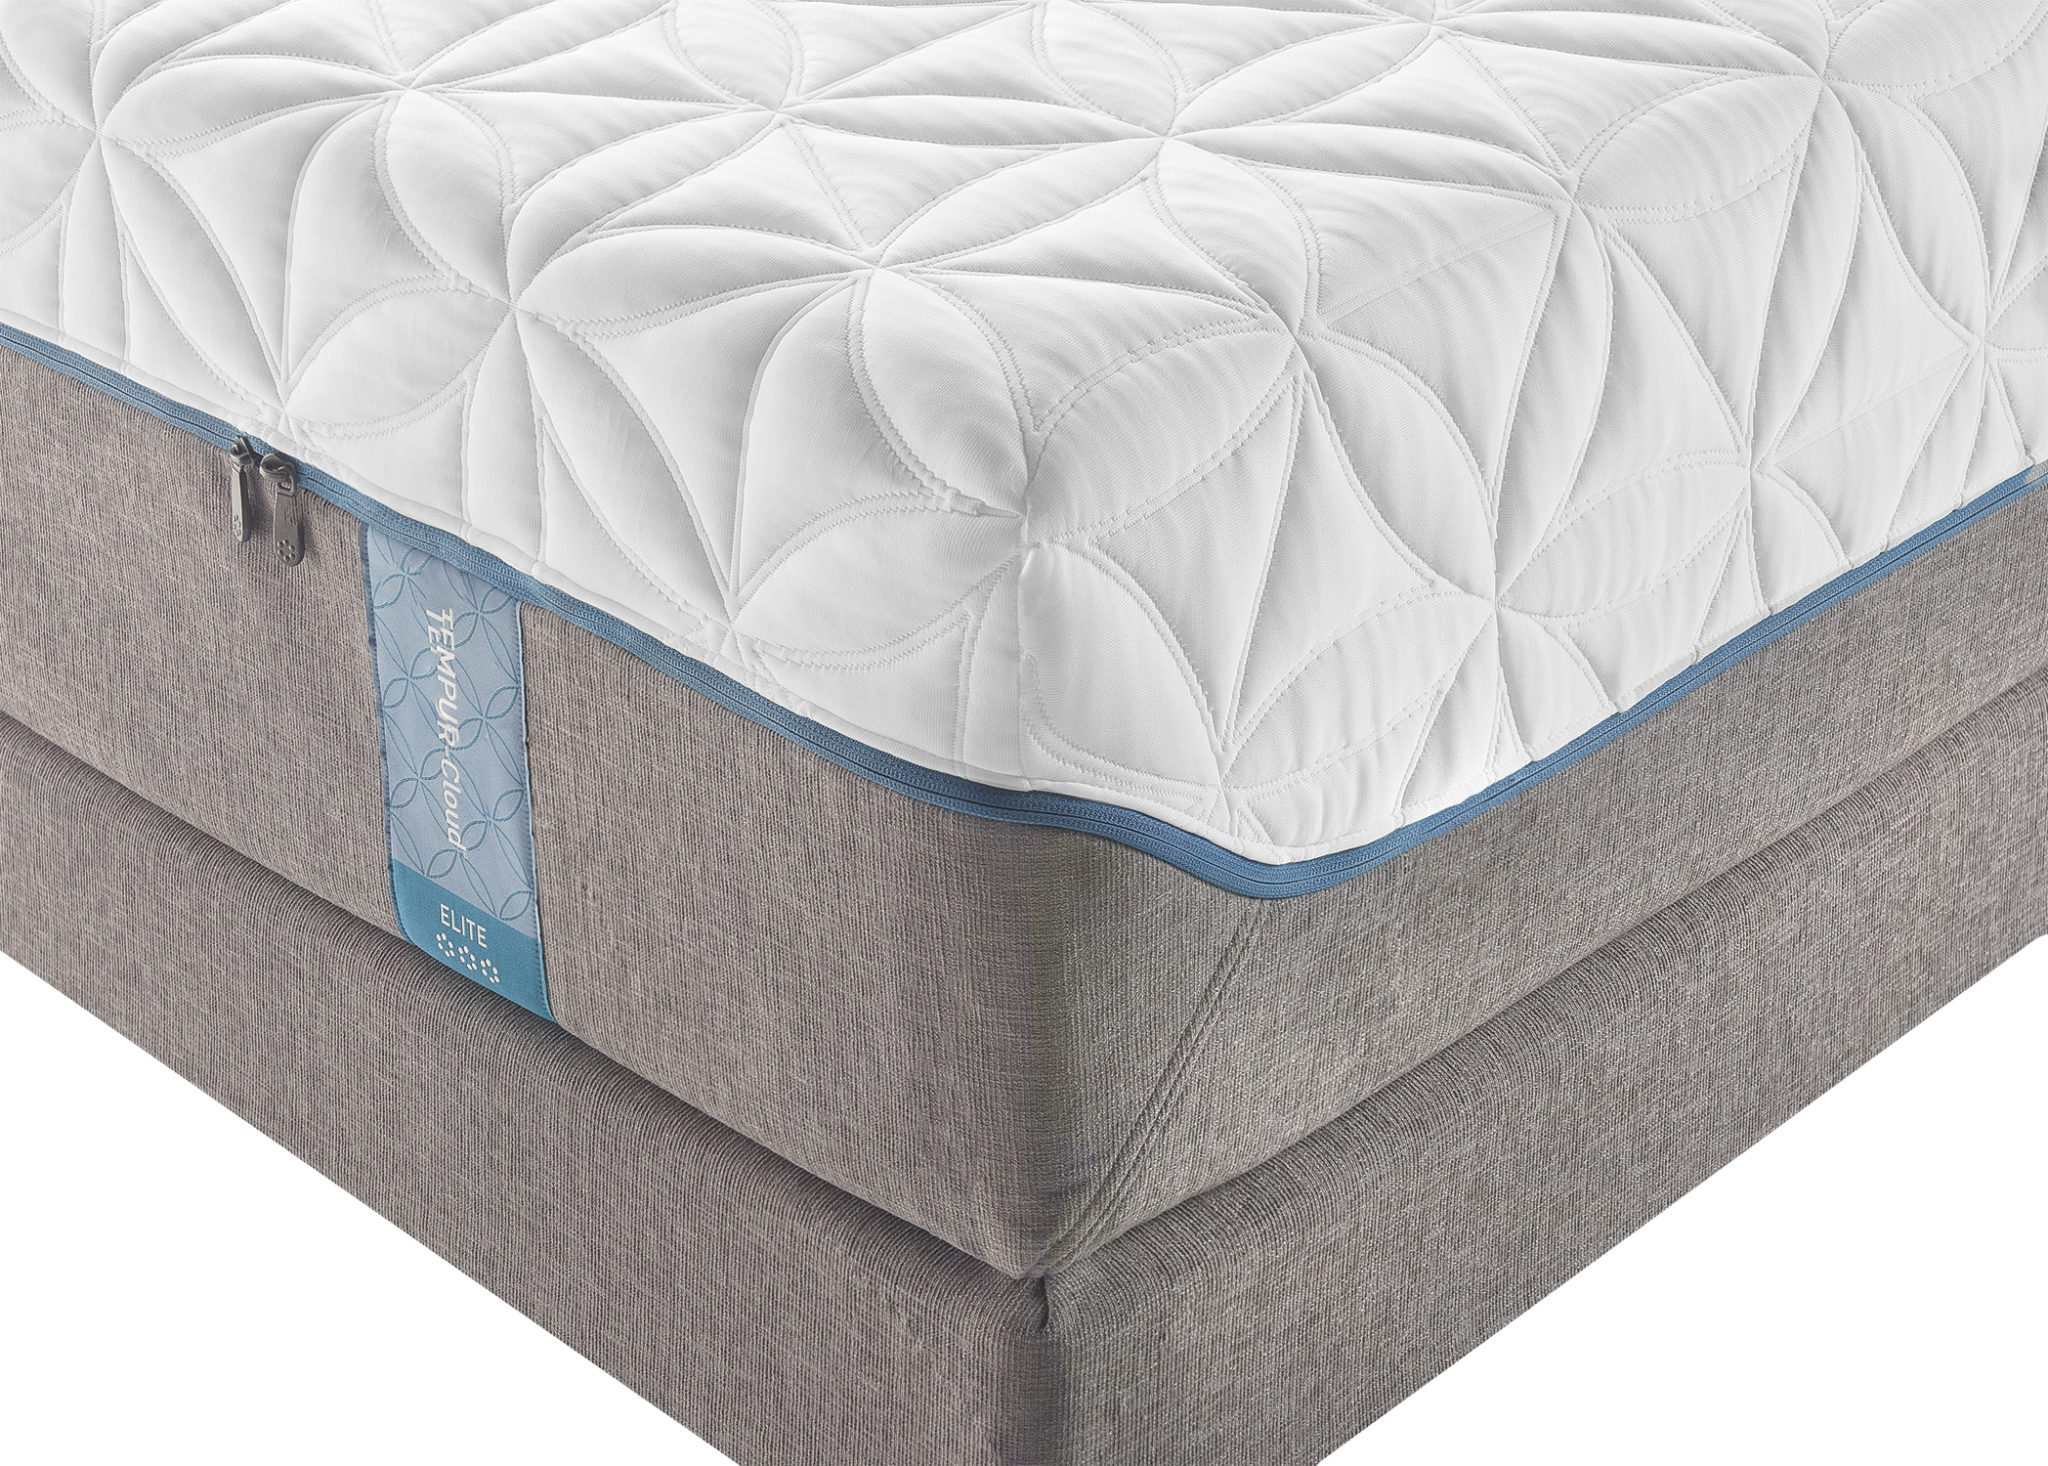 Tempur Pedic Mattress – The Back Store